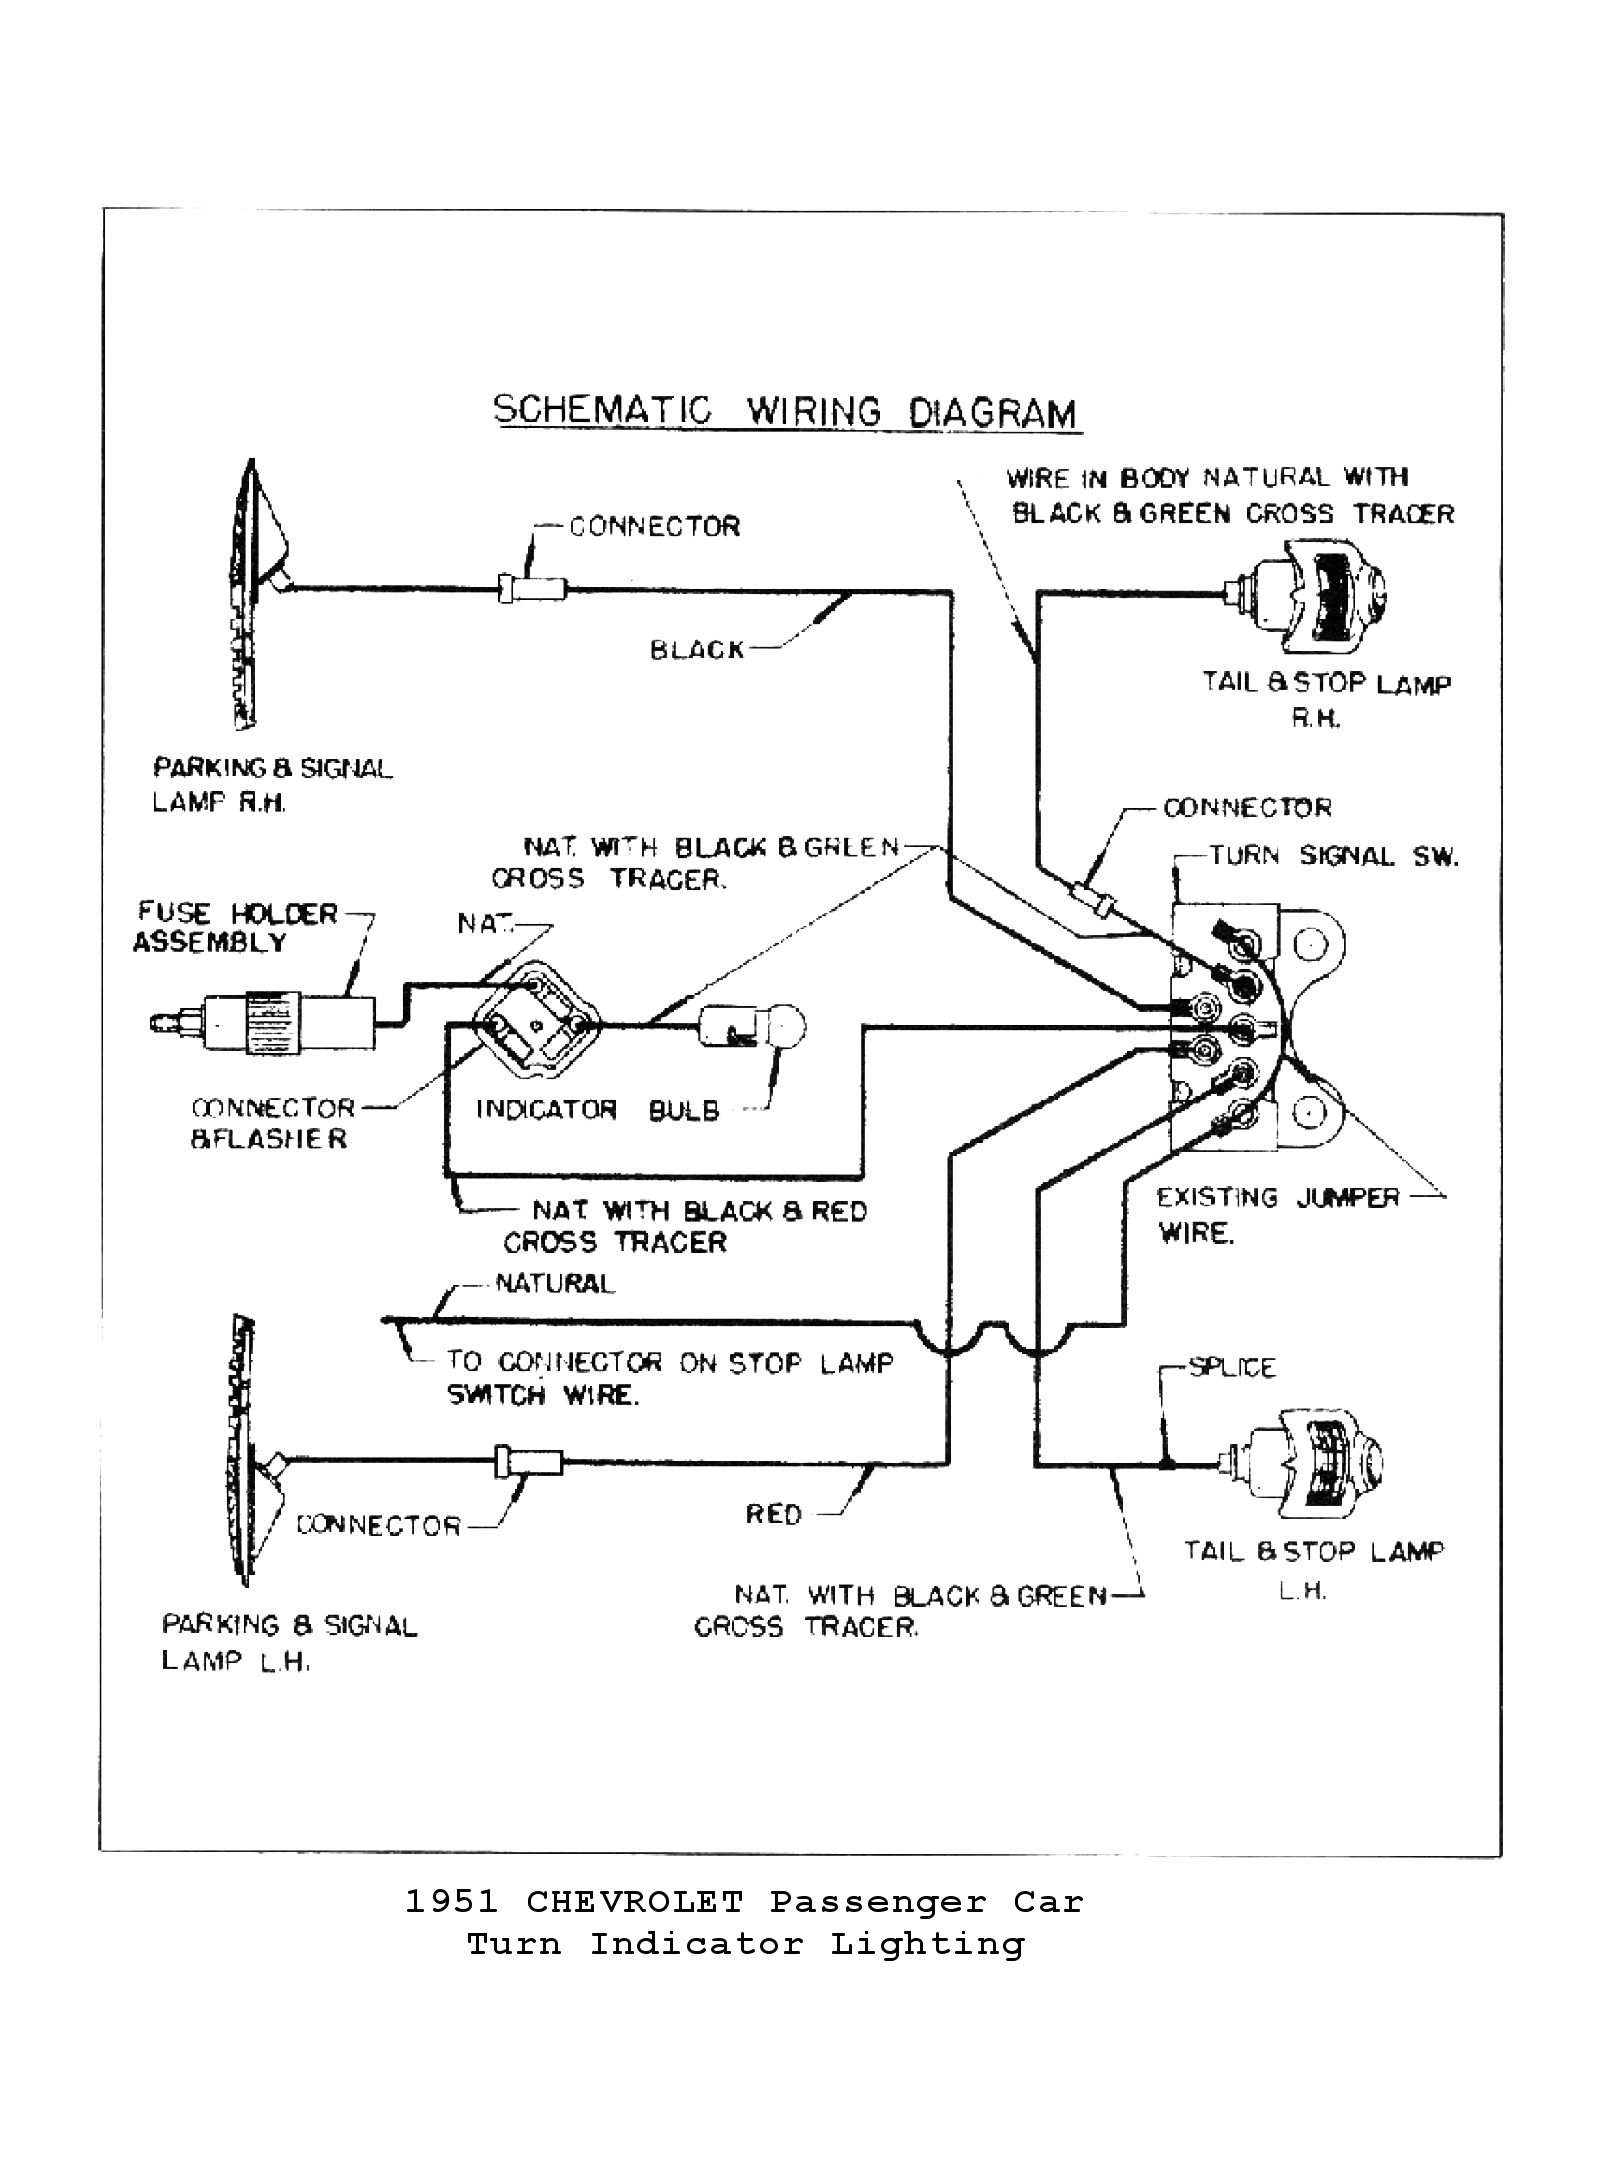 wiring diagram for 1955 chevy bel air ireleast info 1957 chevy truck turn signal wiring diagram wire diagram wiring diagram